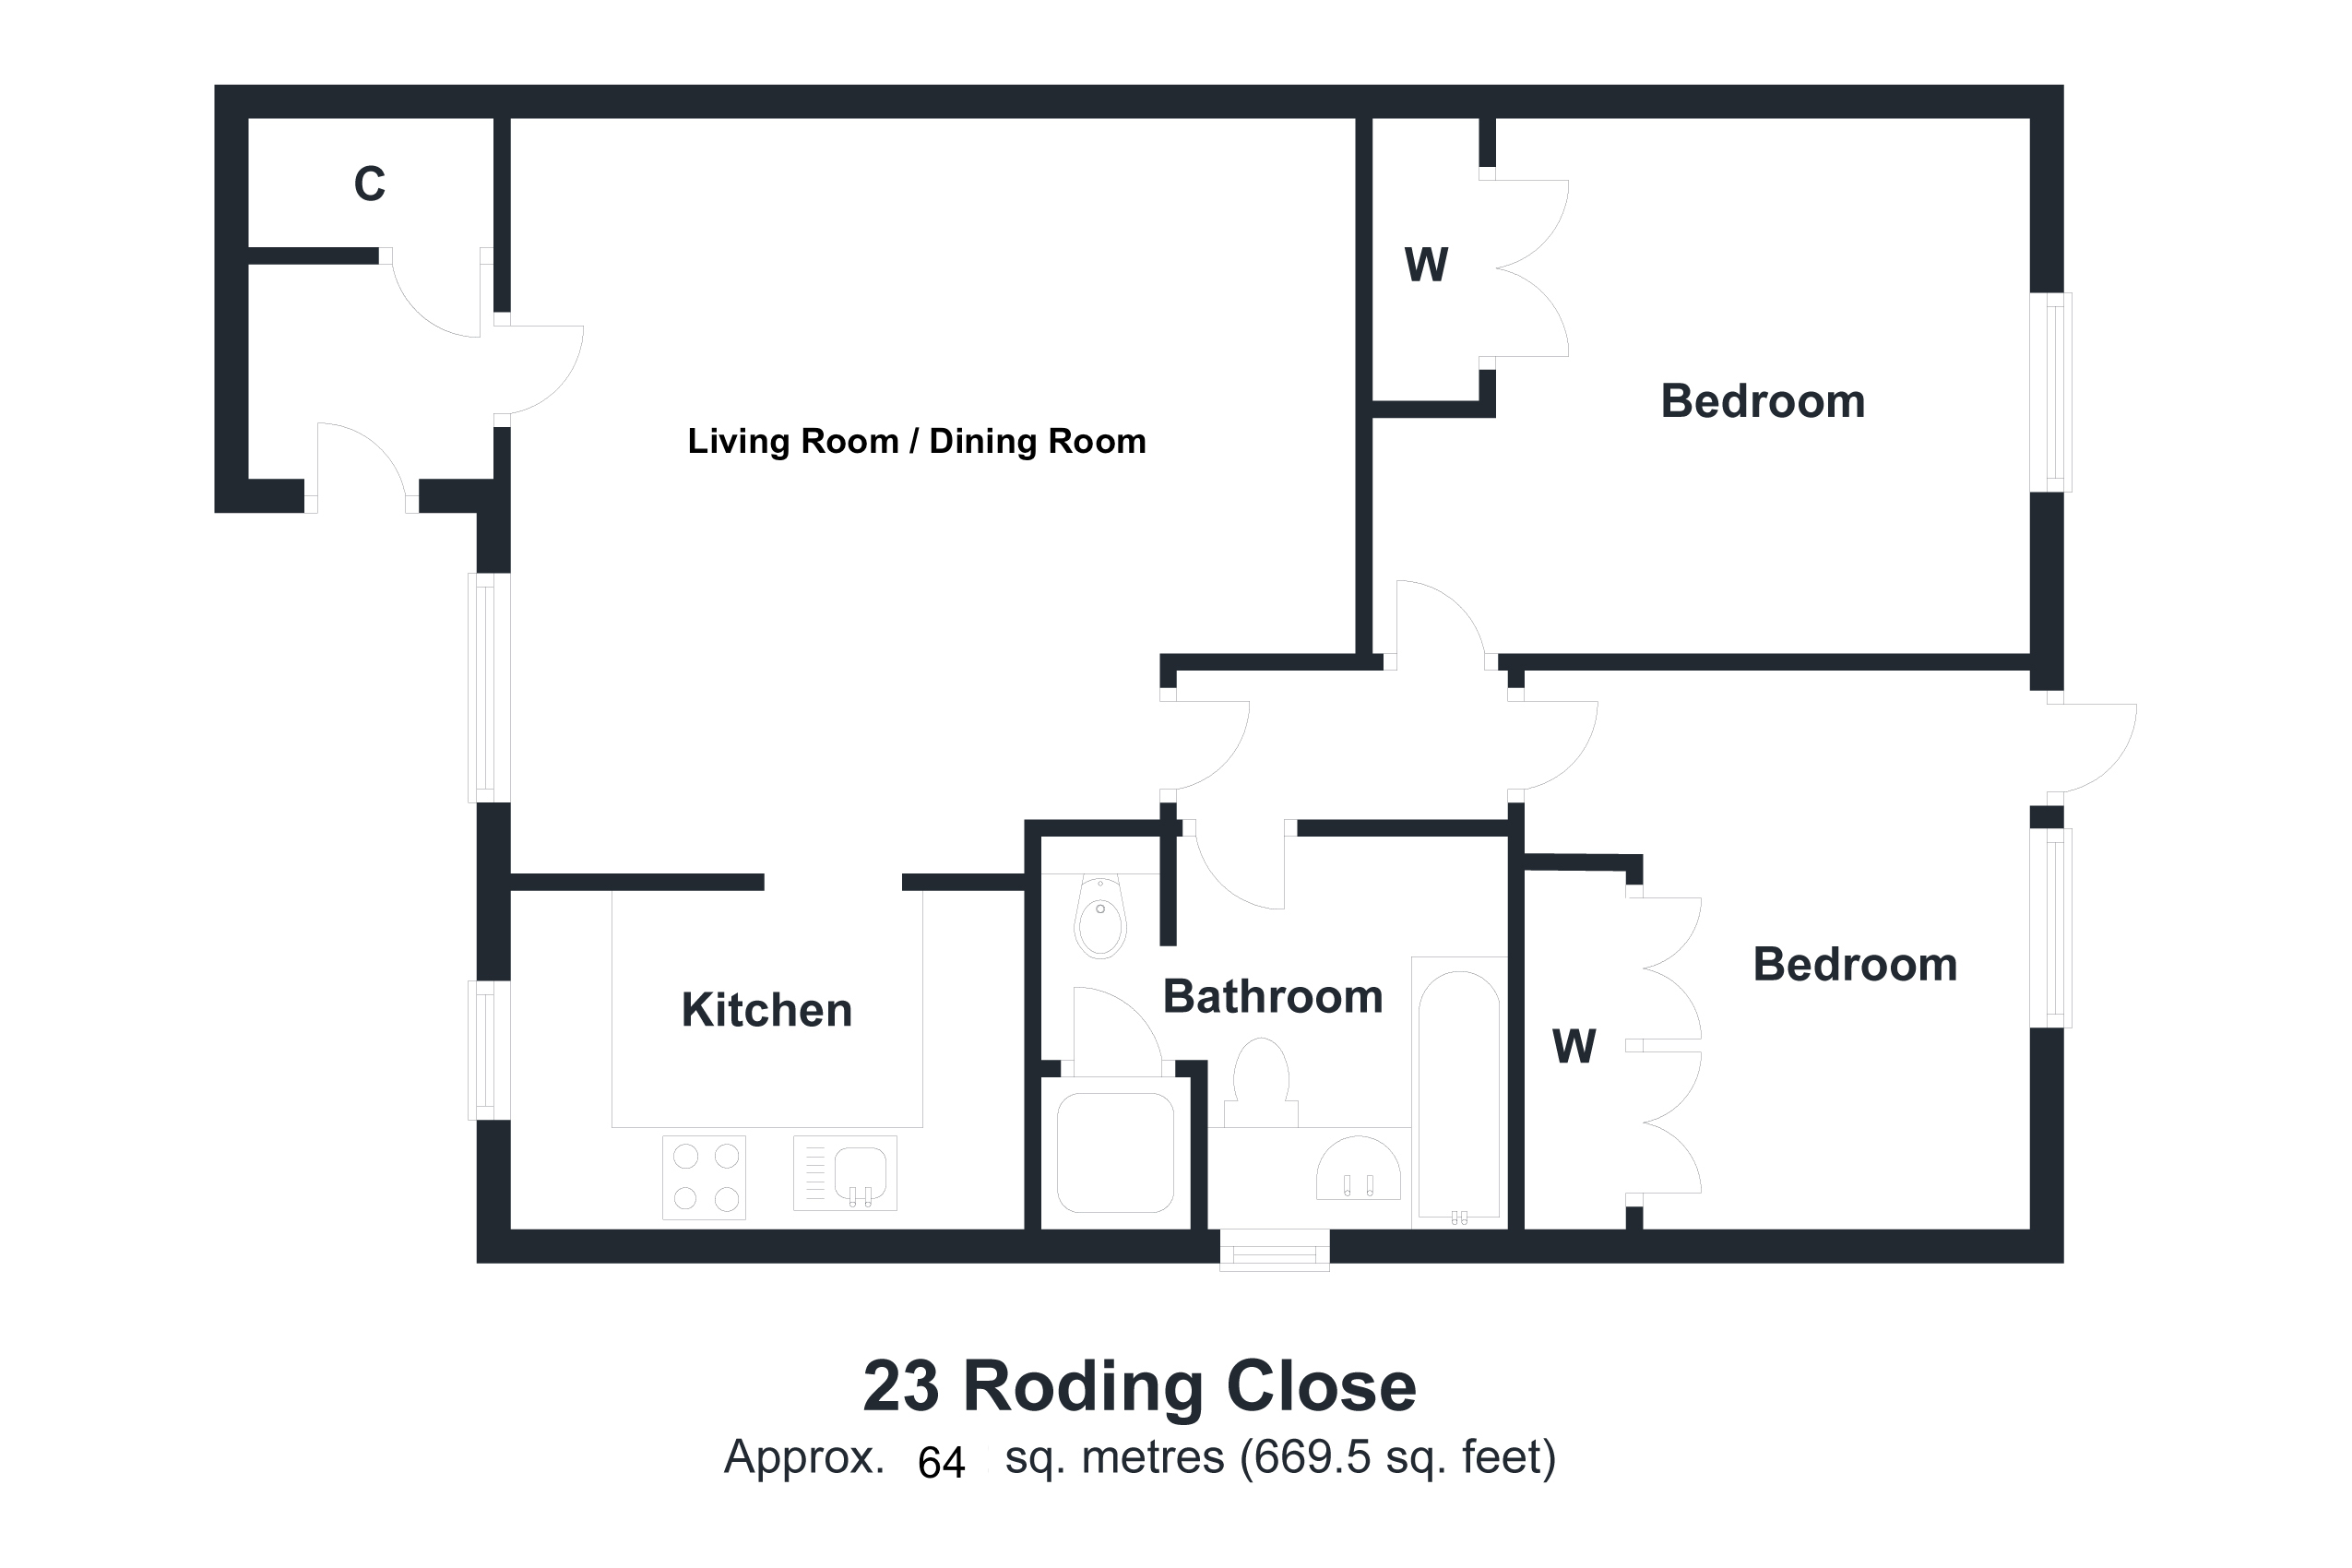 23 Roding Close Floorplan